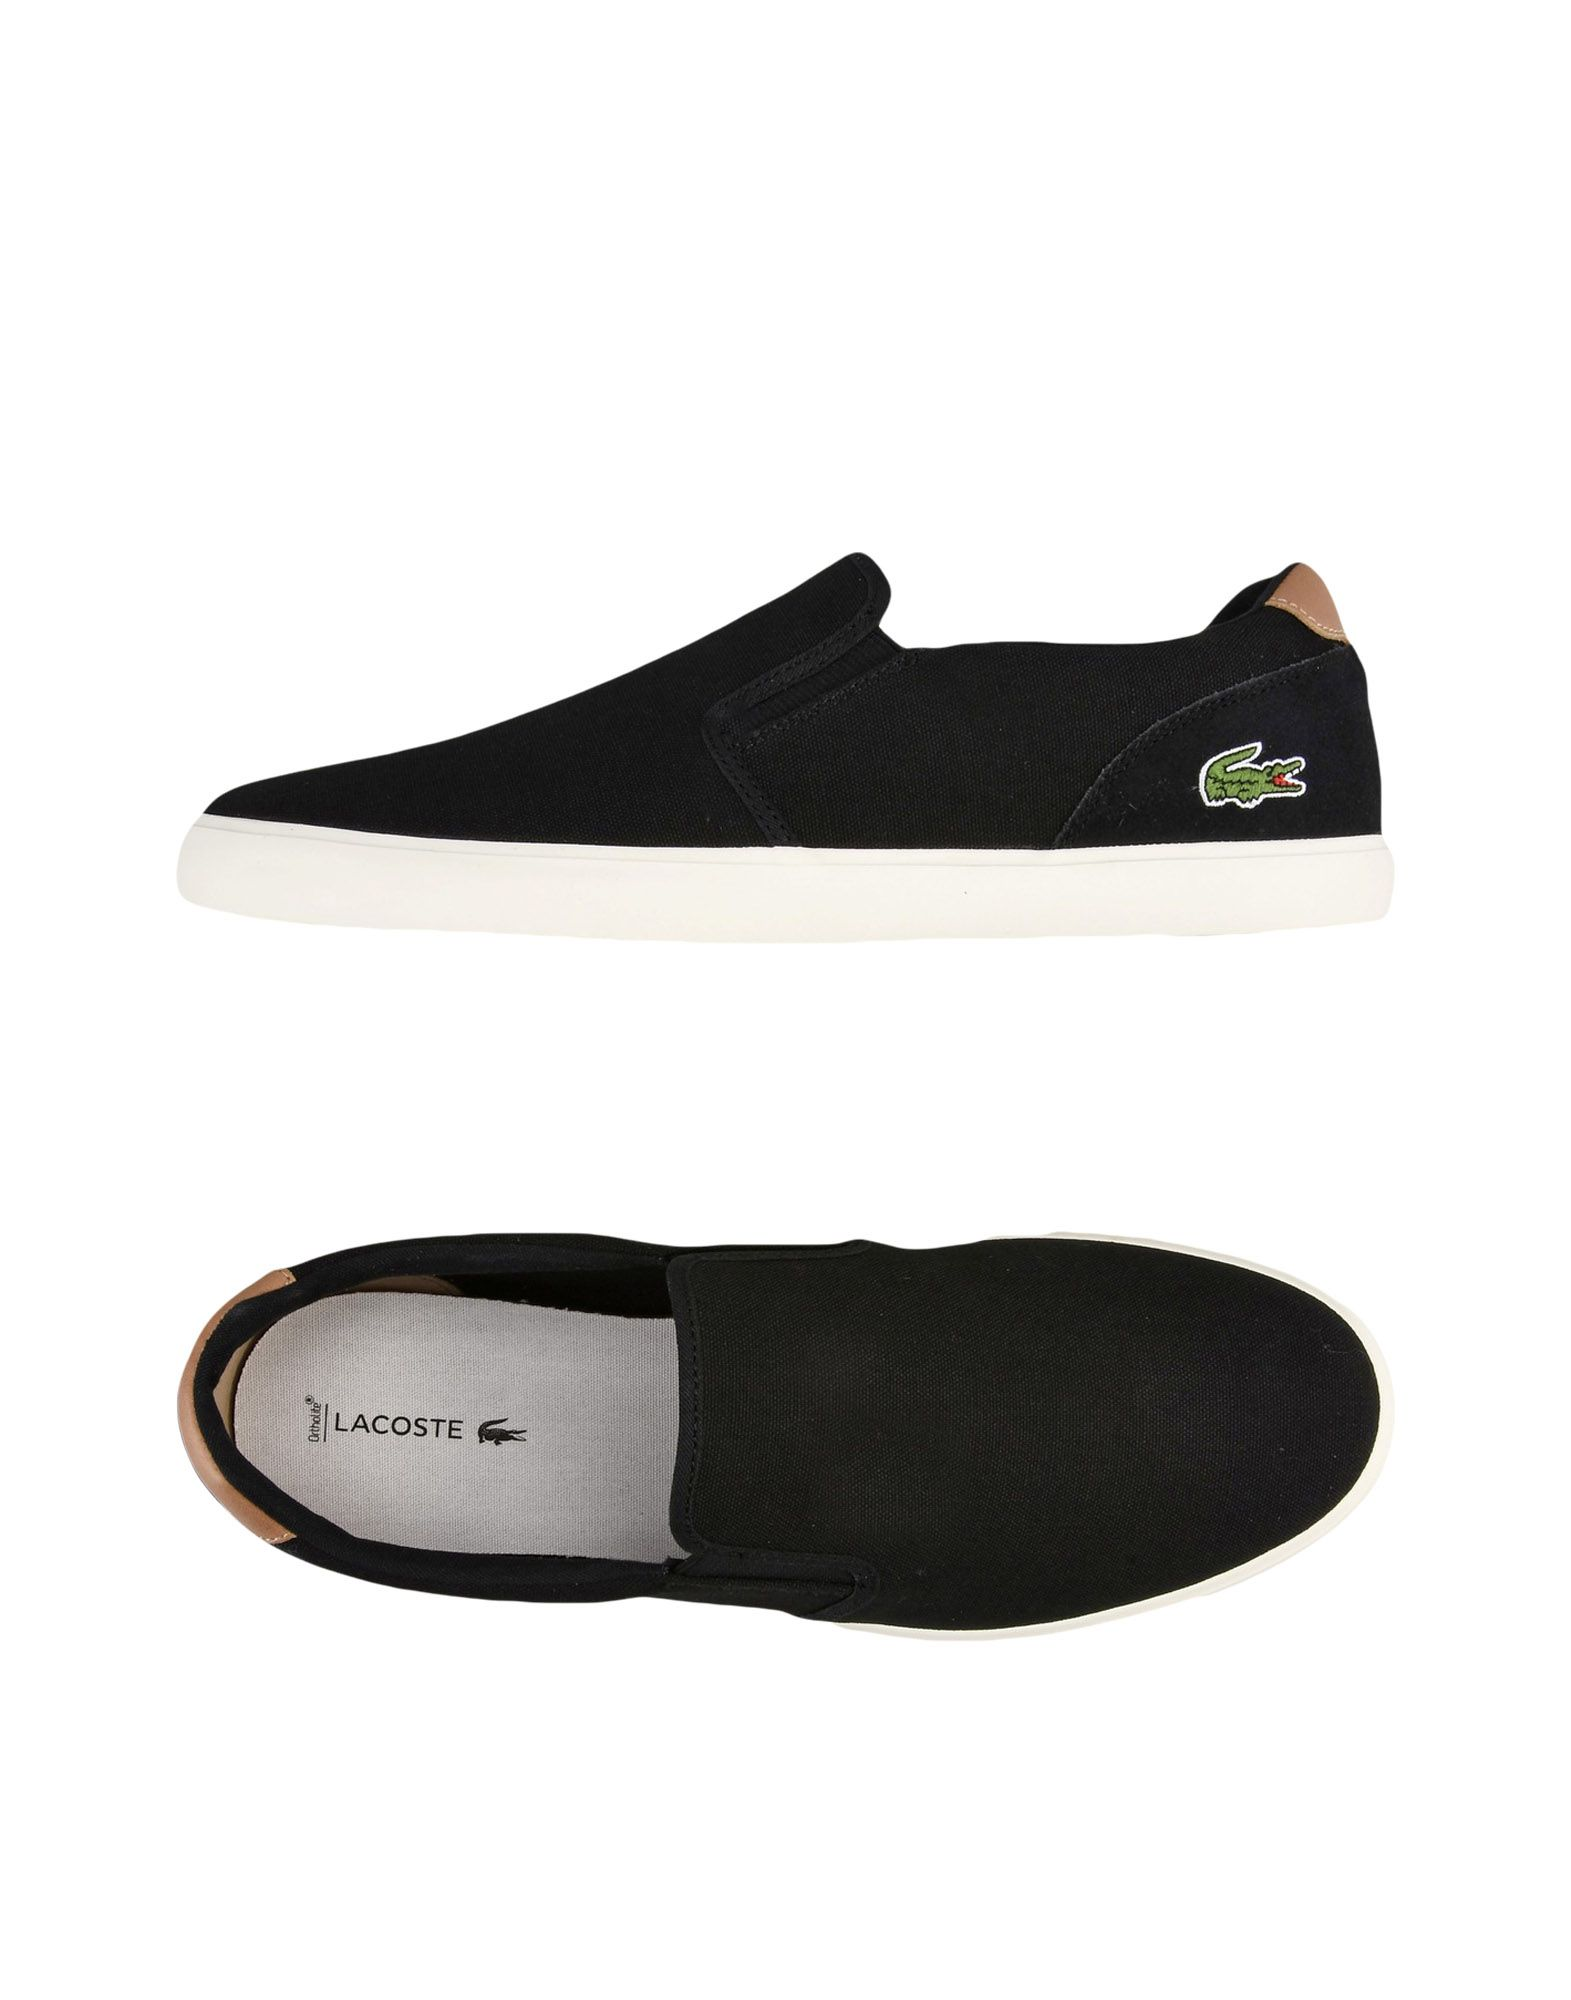 Turnscarpe Lacoste Jouer Slip-On 316 316 316 1 - uomo - 11210844DR de0